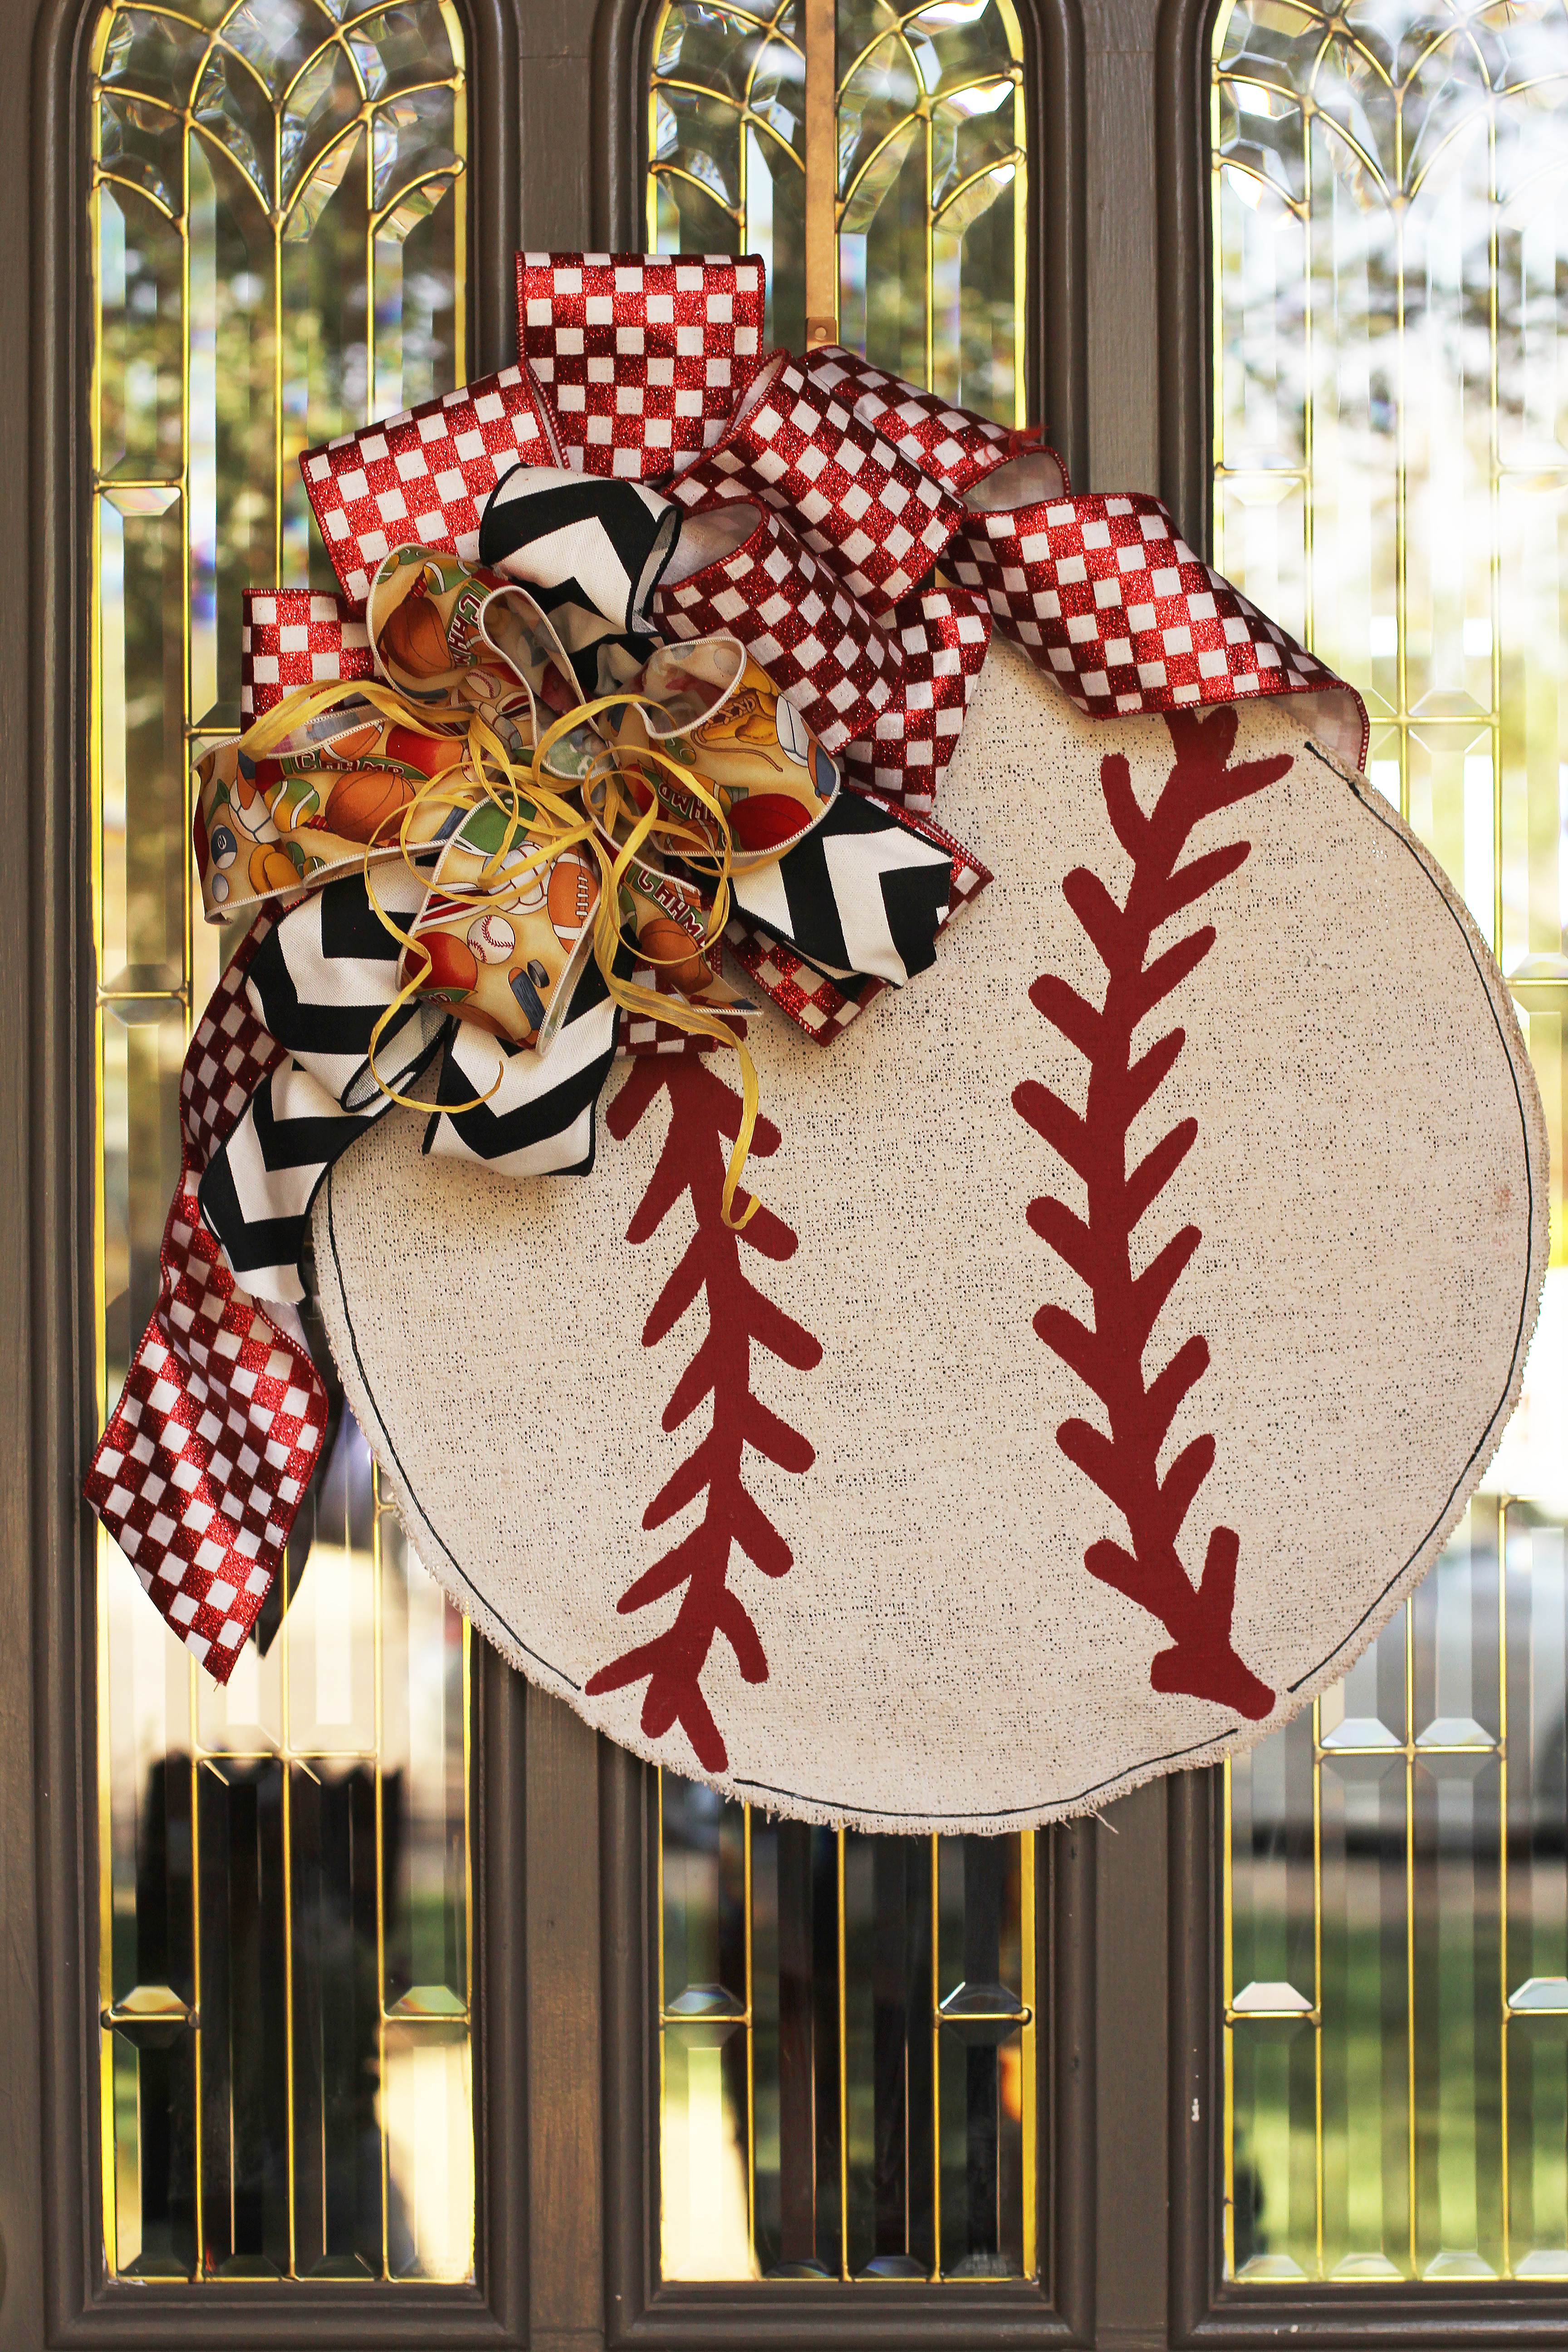 Baby Shower  Show Me Decorating. Windows Treatment Ideas For Living Room. Rooster Kitchen Decor. Decorative Storage Trunk. Wall Decor And More. Good Room Fans. Fruit Themed Kitchen Decor Collection. Thanksgiving Decor. Rugs For Baby Room